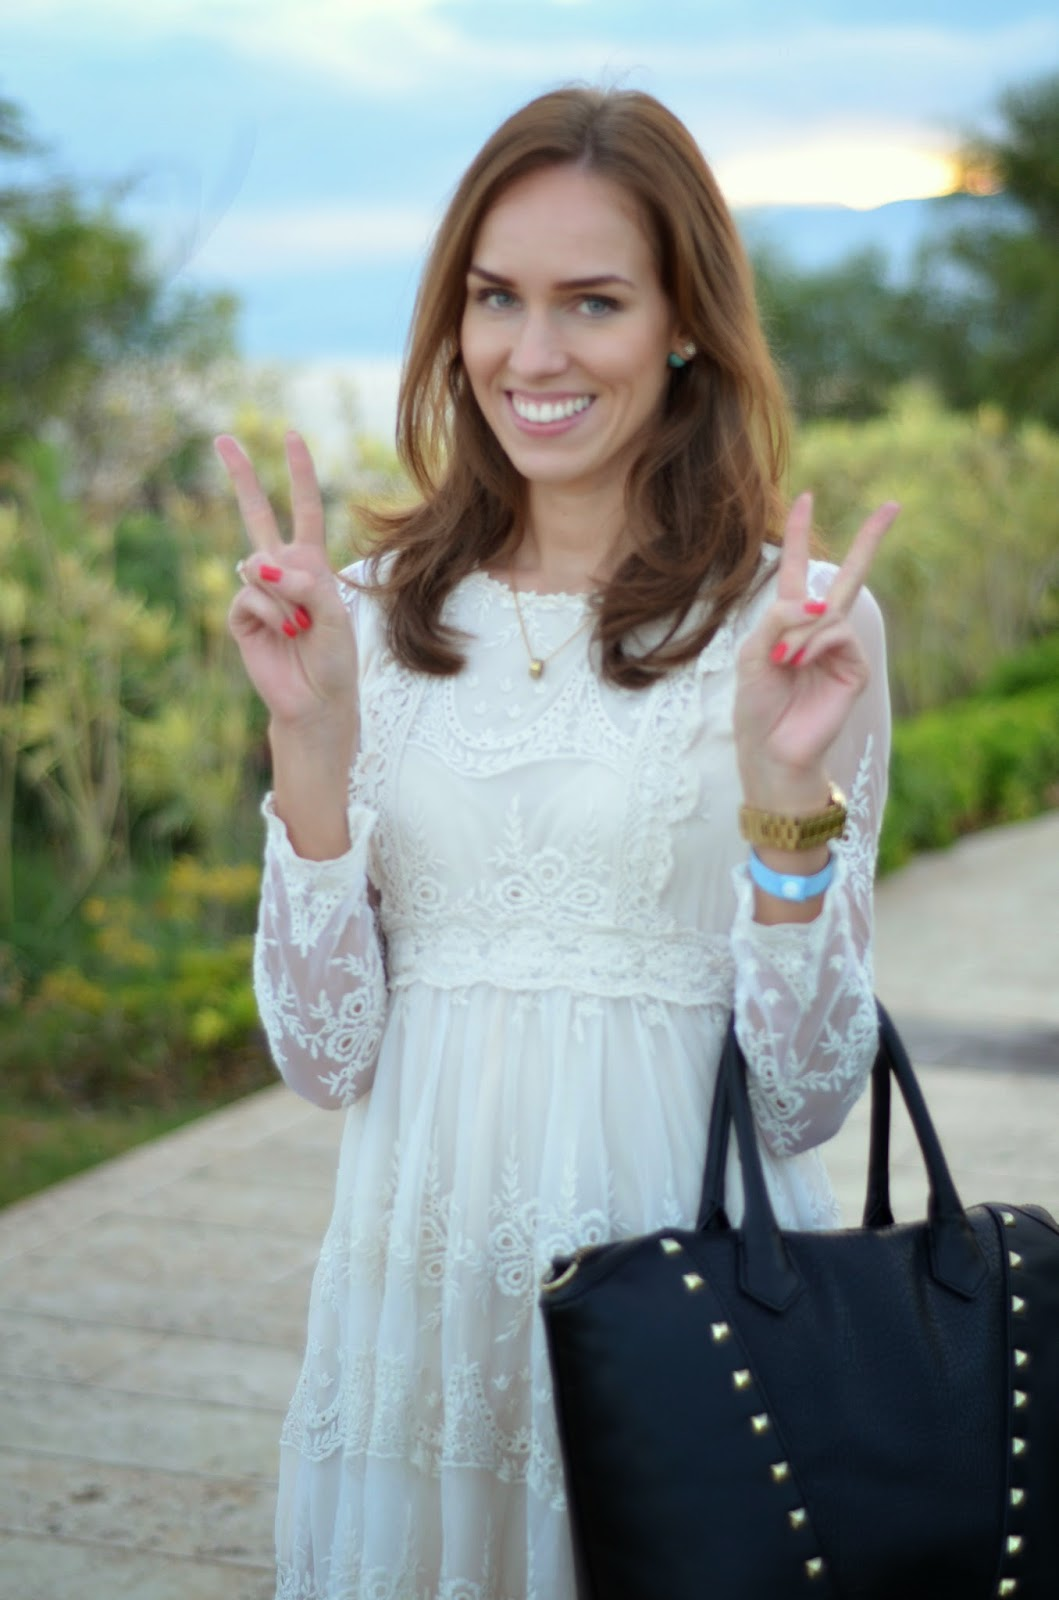 white-lace-dress-chicwish-necklace-marc-jacobs